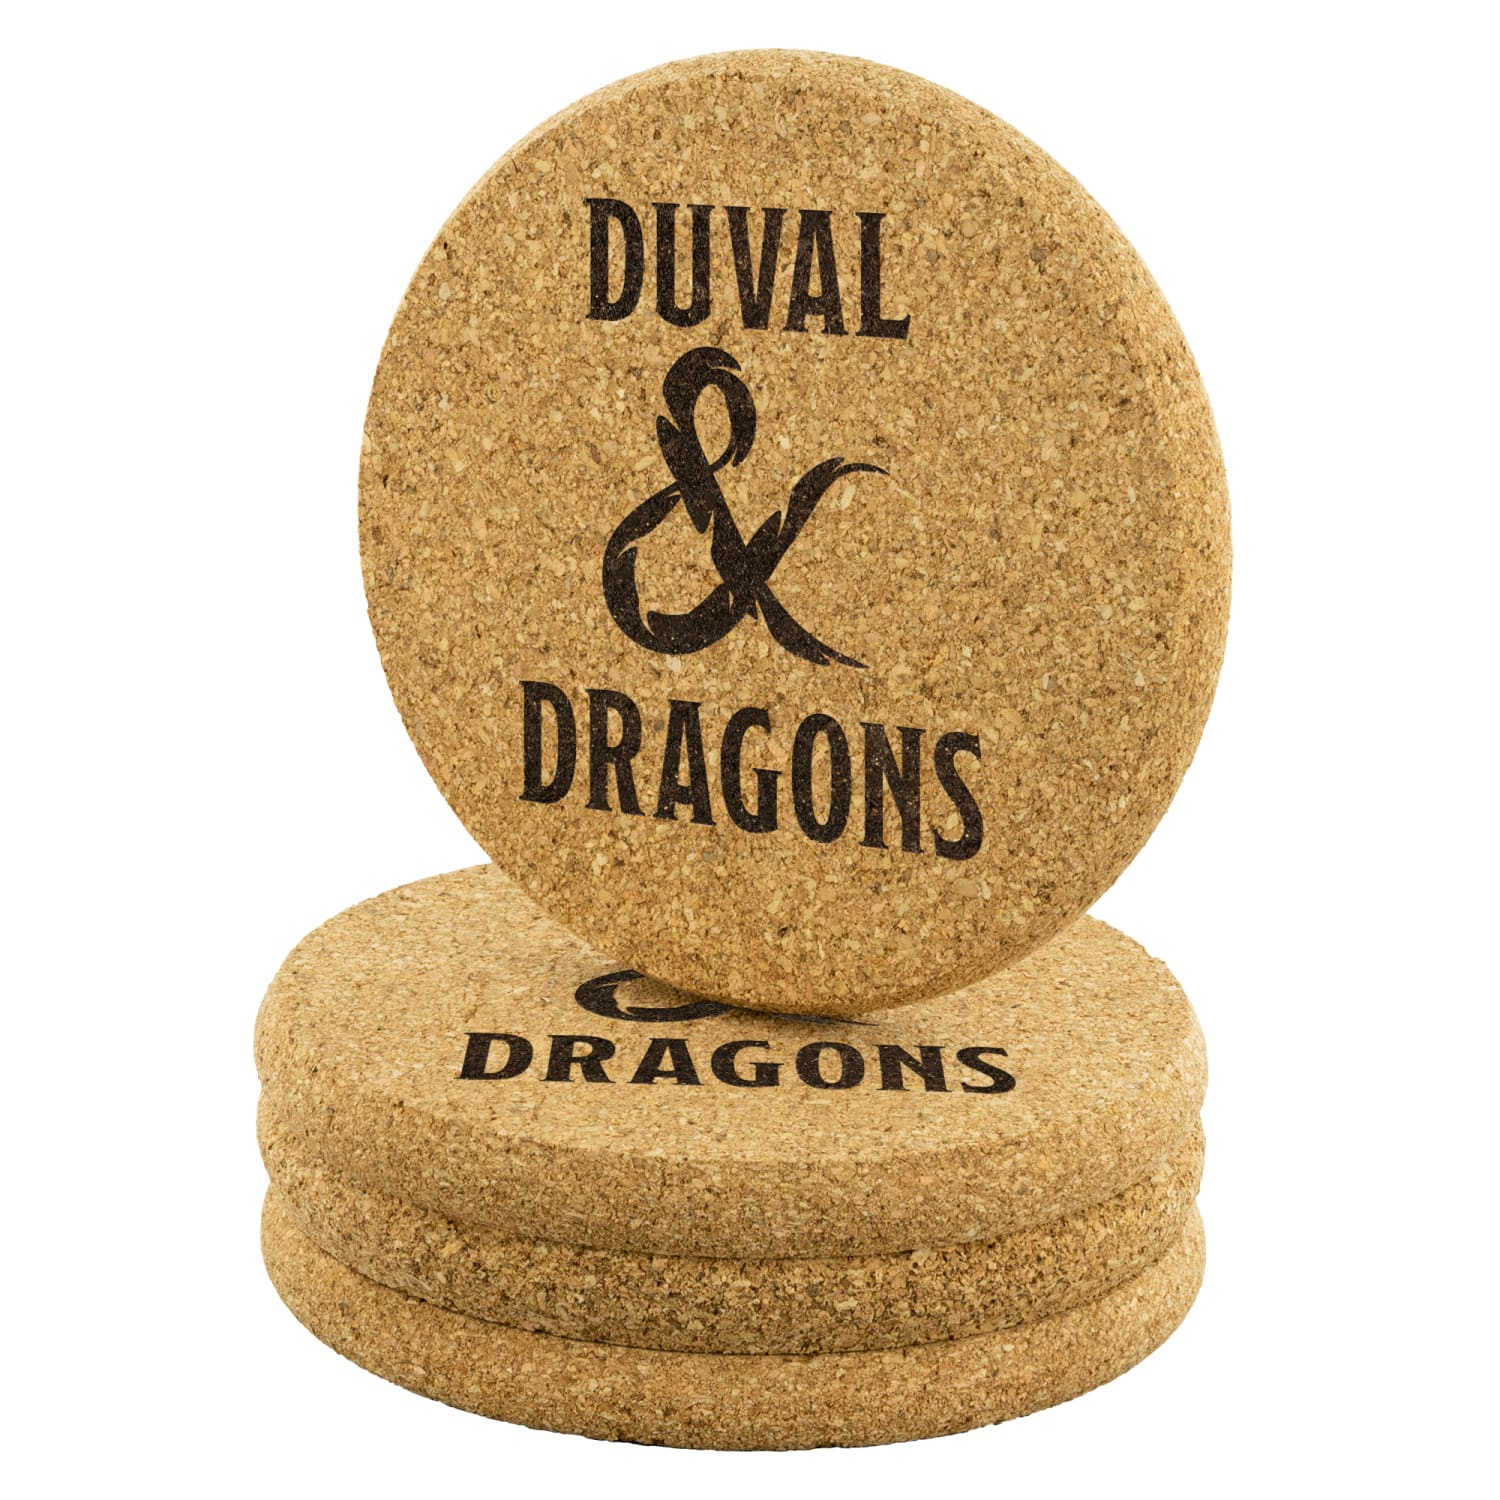 Duval & Dragons Logo Round Cork Coaster Set of 4 - Round Cork Coaster - 4pc - Coasters